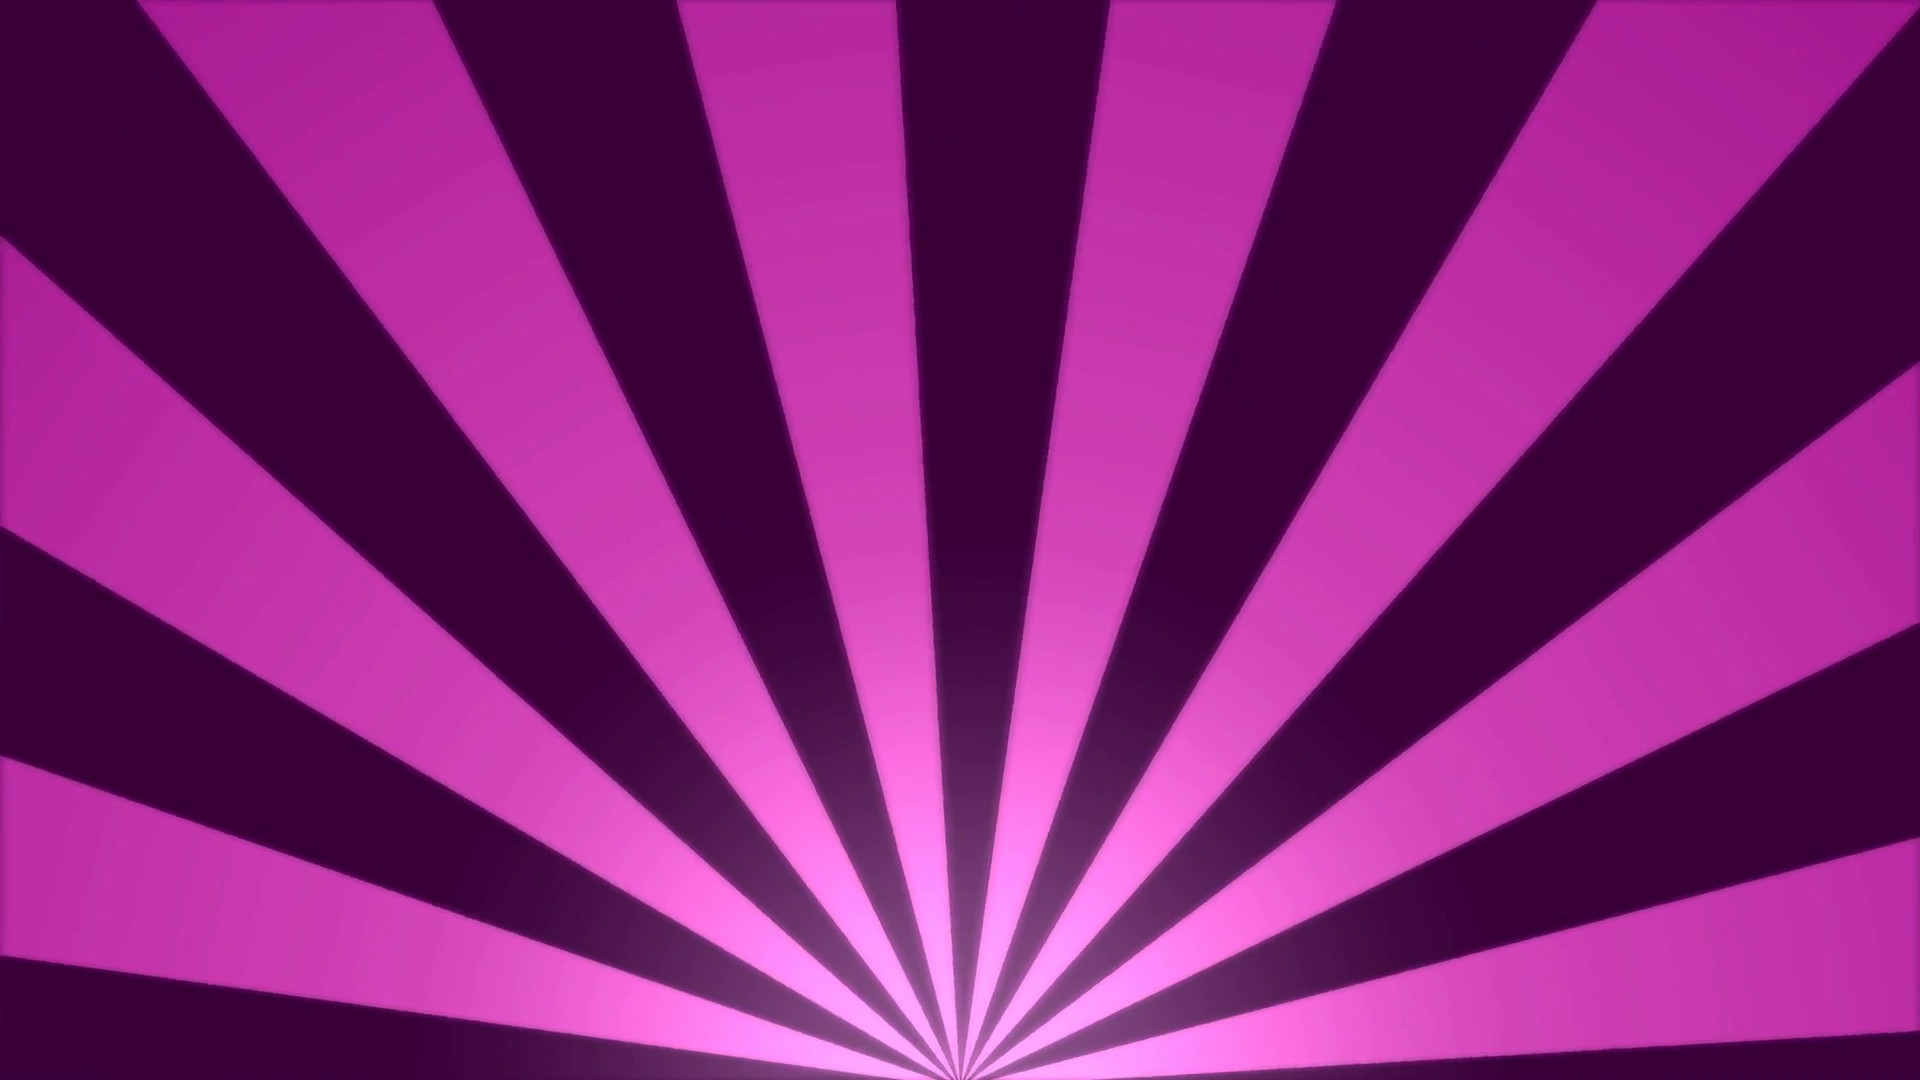 Subscription Library Rotating Stripes Background Animation – Loop Purple